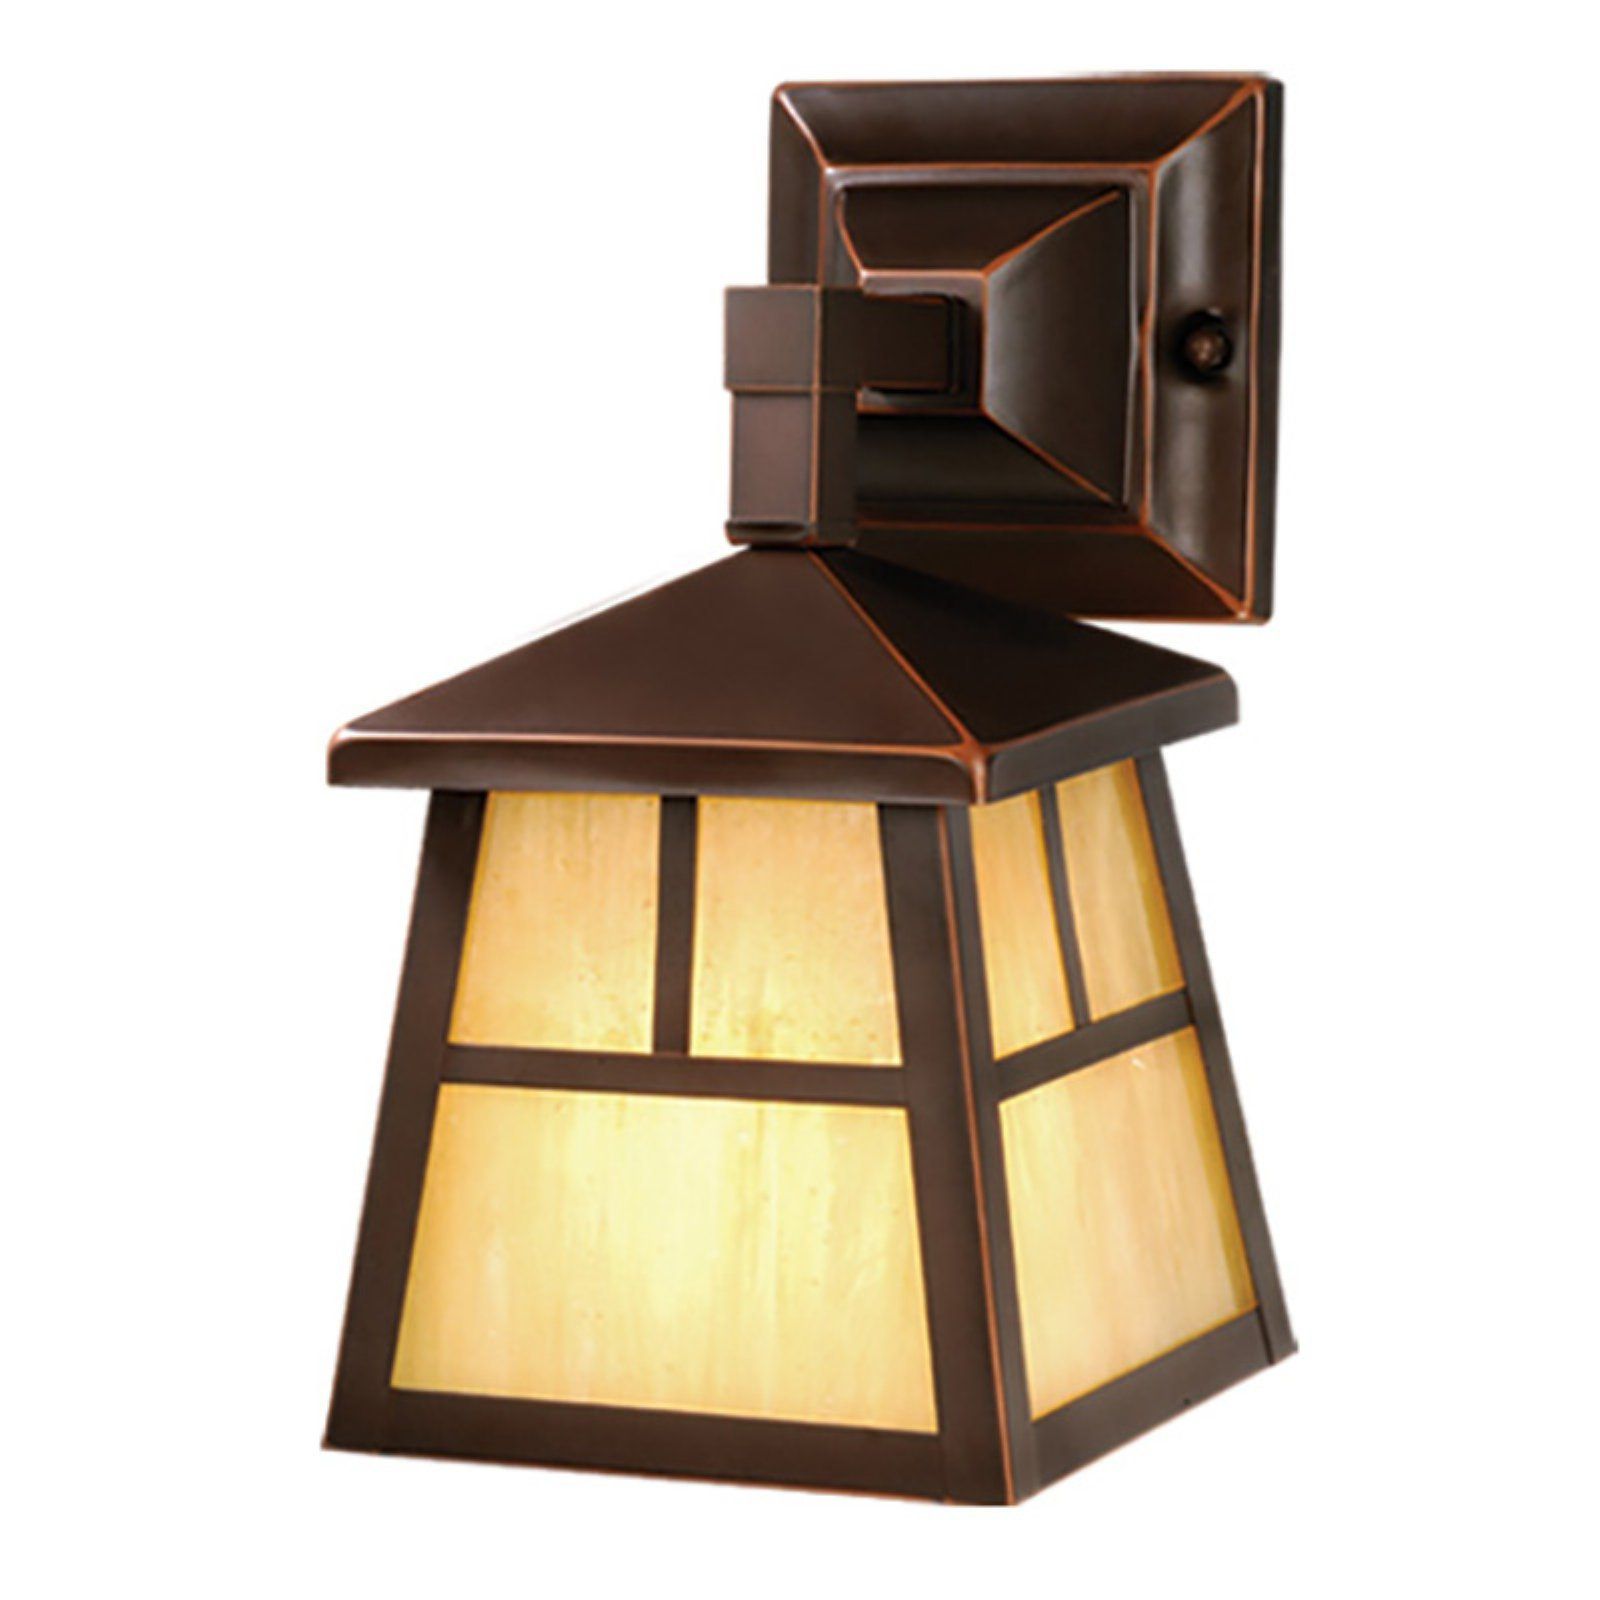 Vaxcel Mission OW14663/37263 Outdoor Wall Sconce